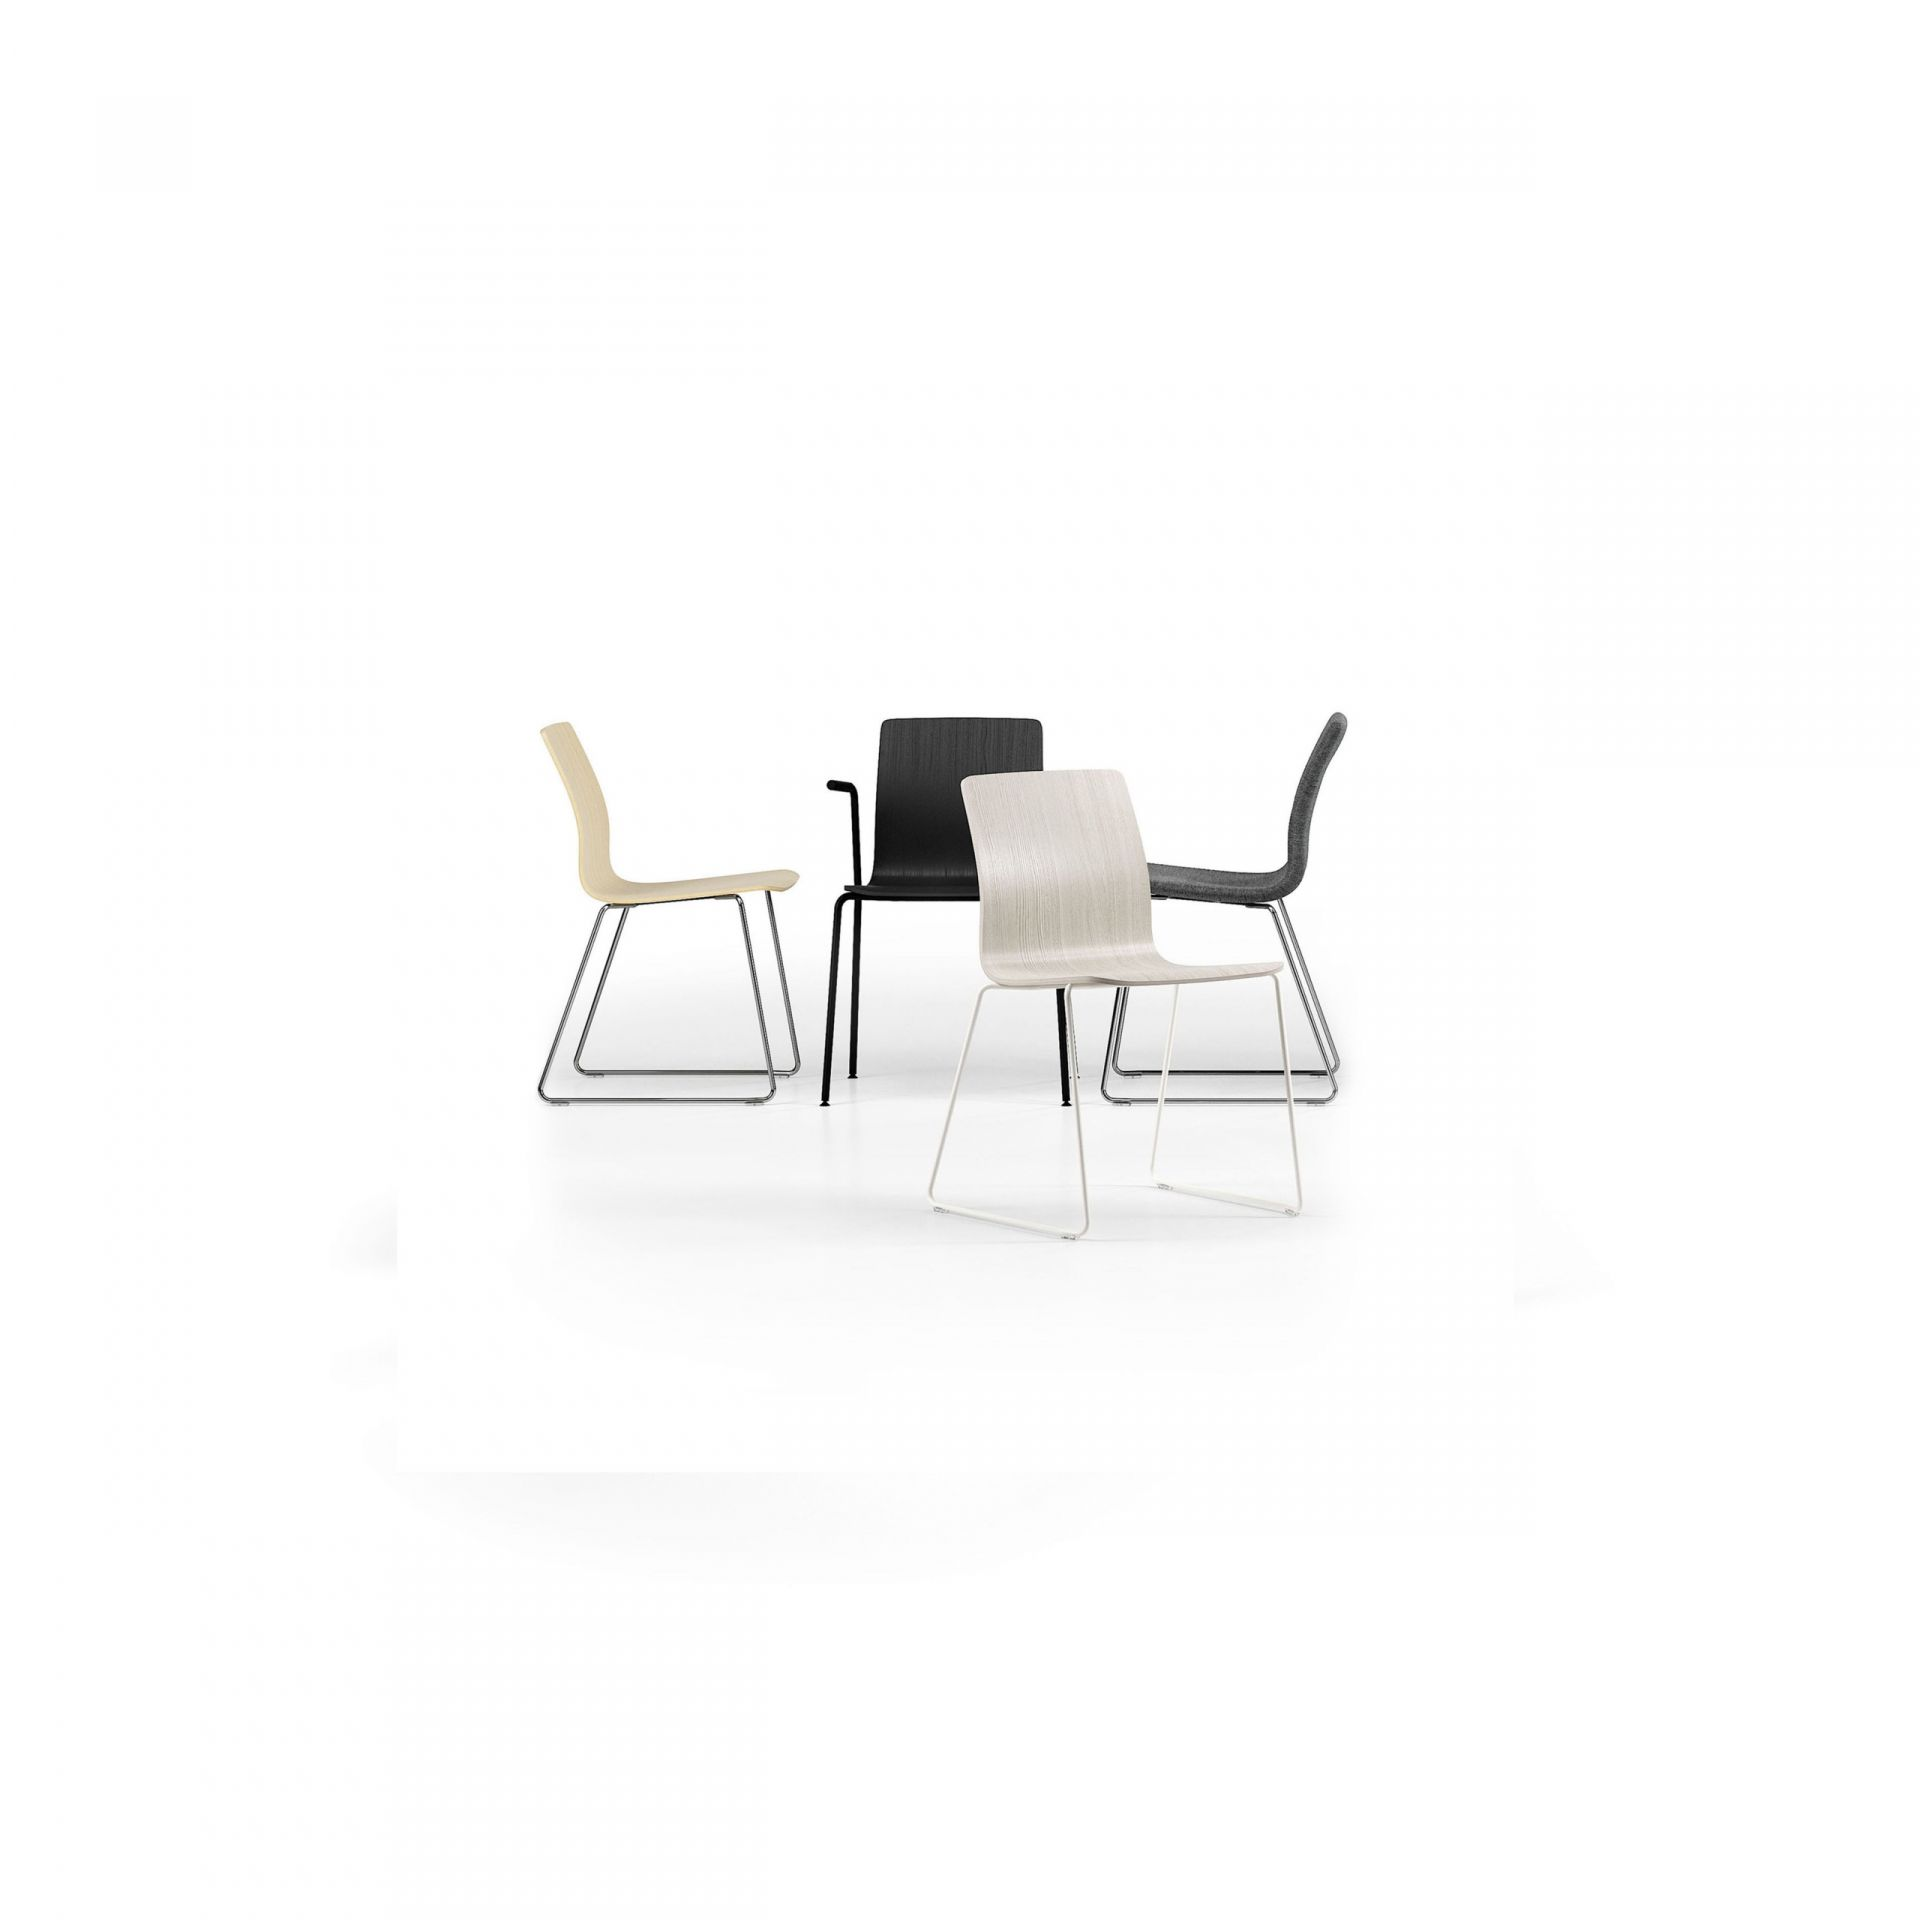 Nova Chair with metal legs product image 5